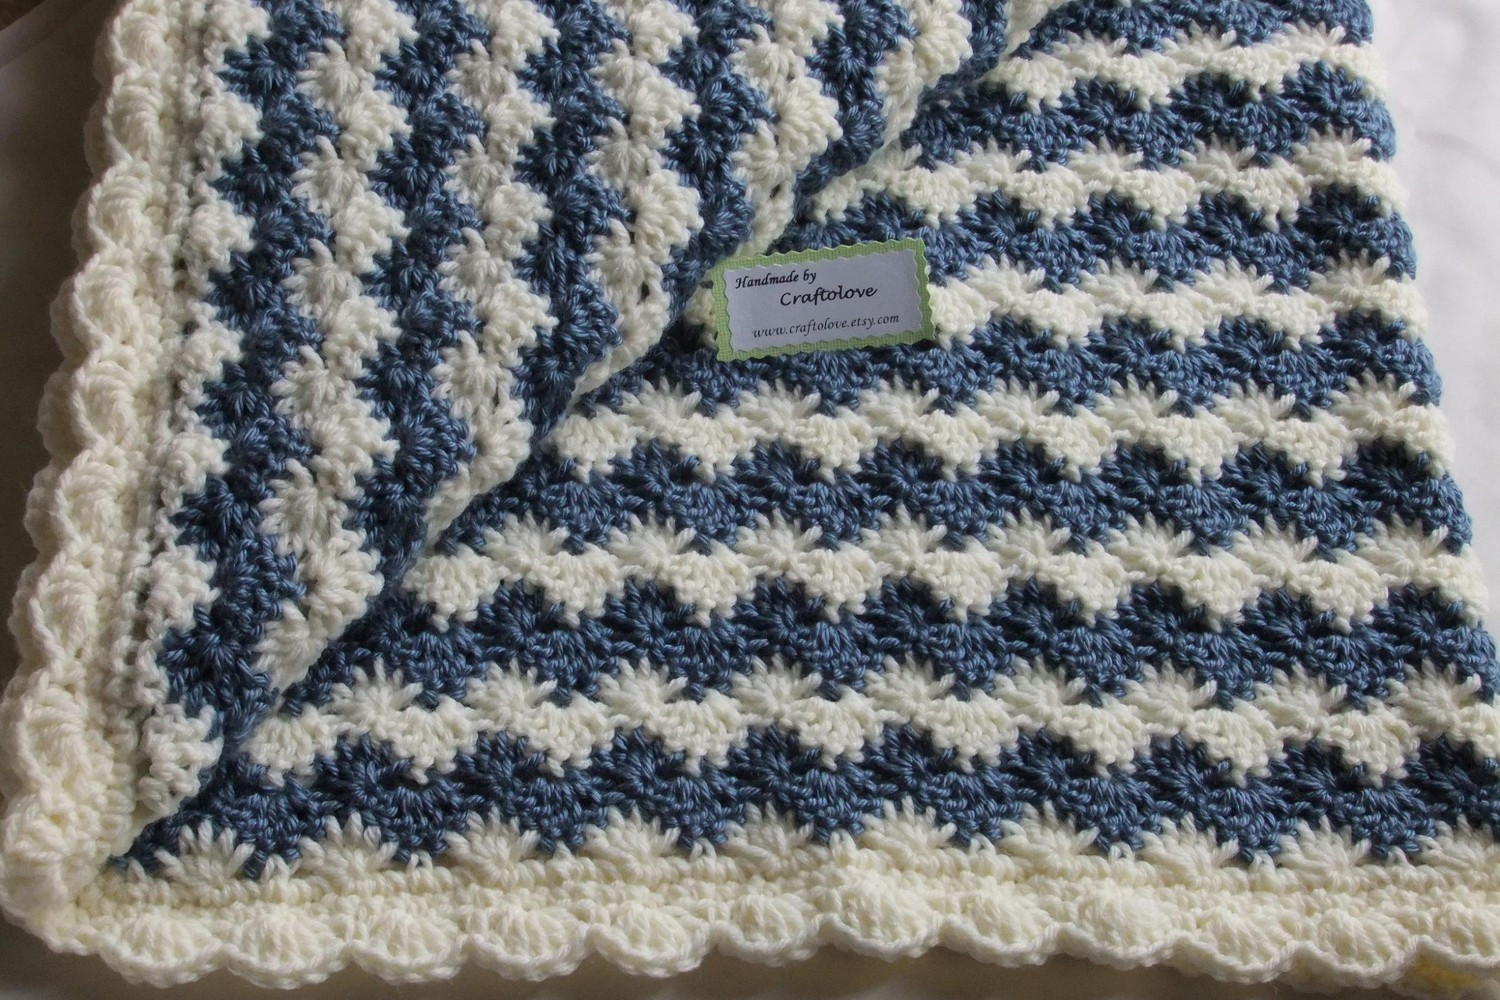 Crochet Stitches for Baby Blankets Beautiful Baby Boy Blanket Crochet Patterns Of Amazing 45 Pics Crochet Stitches for Baby Blankets